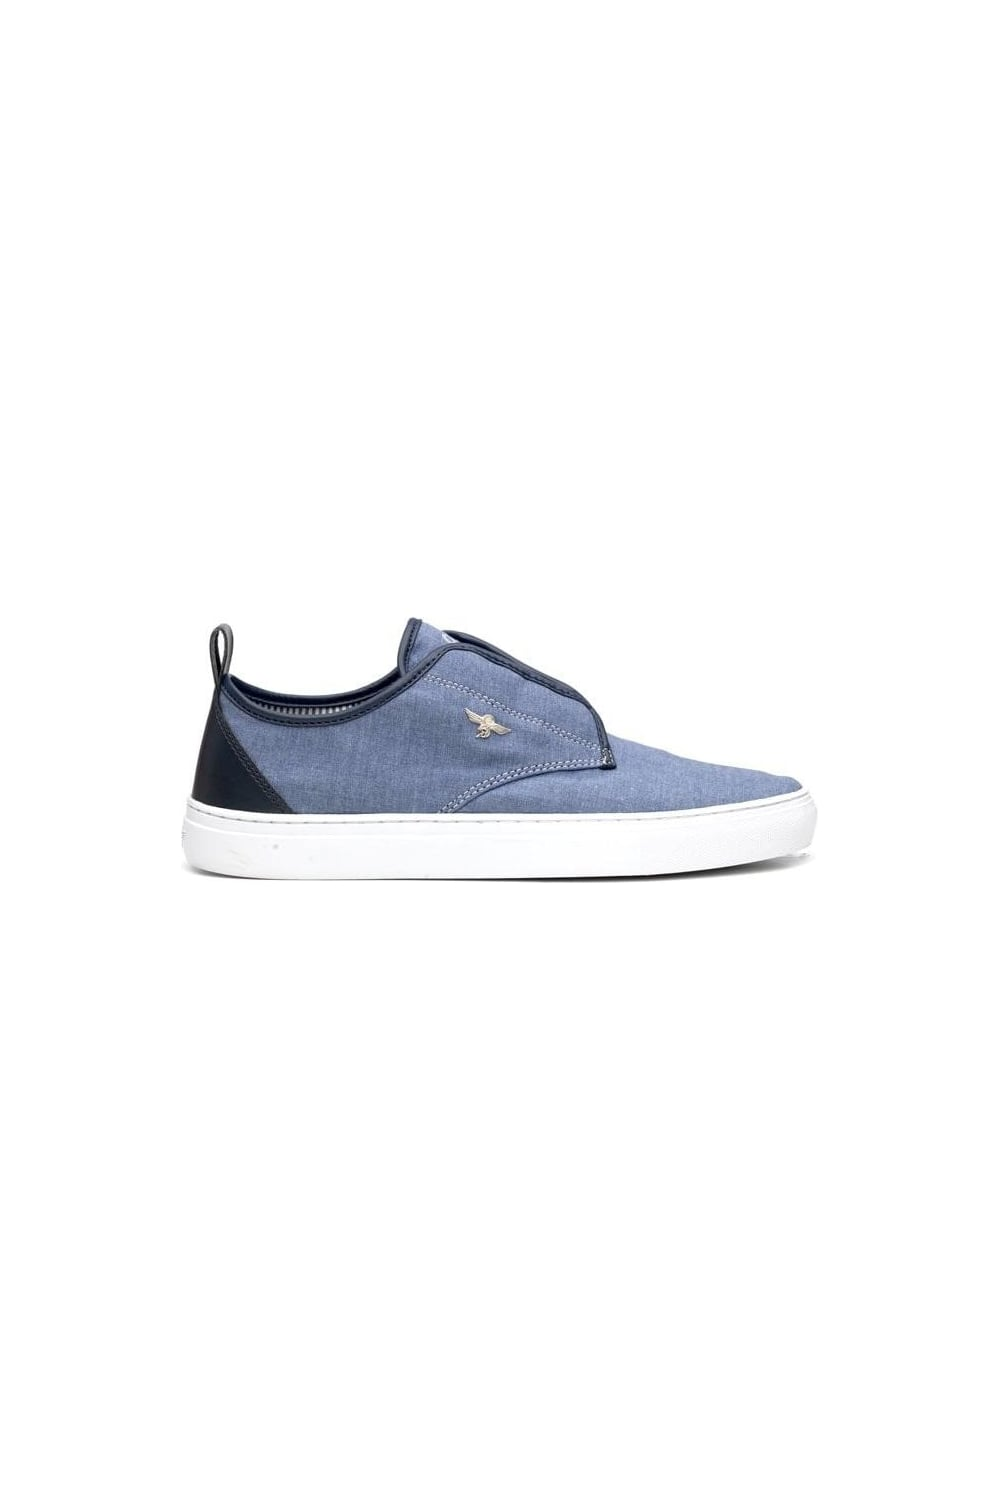 creative recreation lacava lo trainers in blue